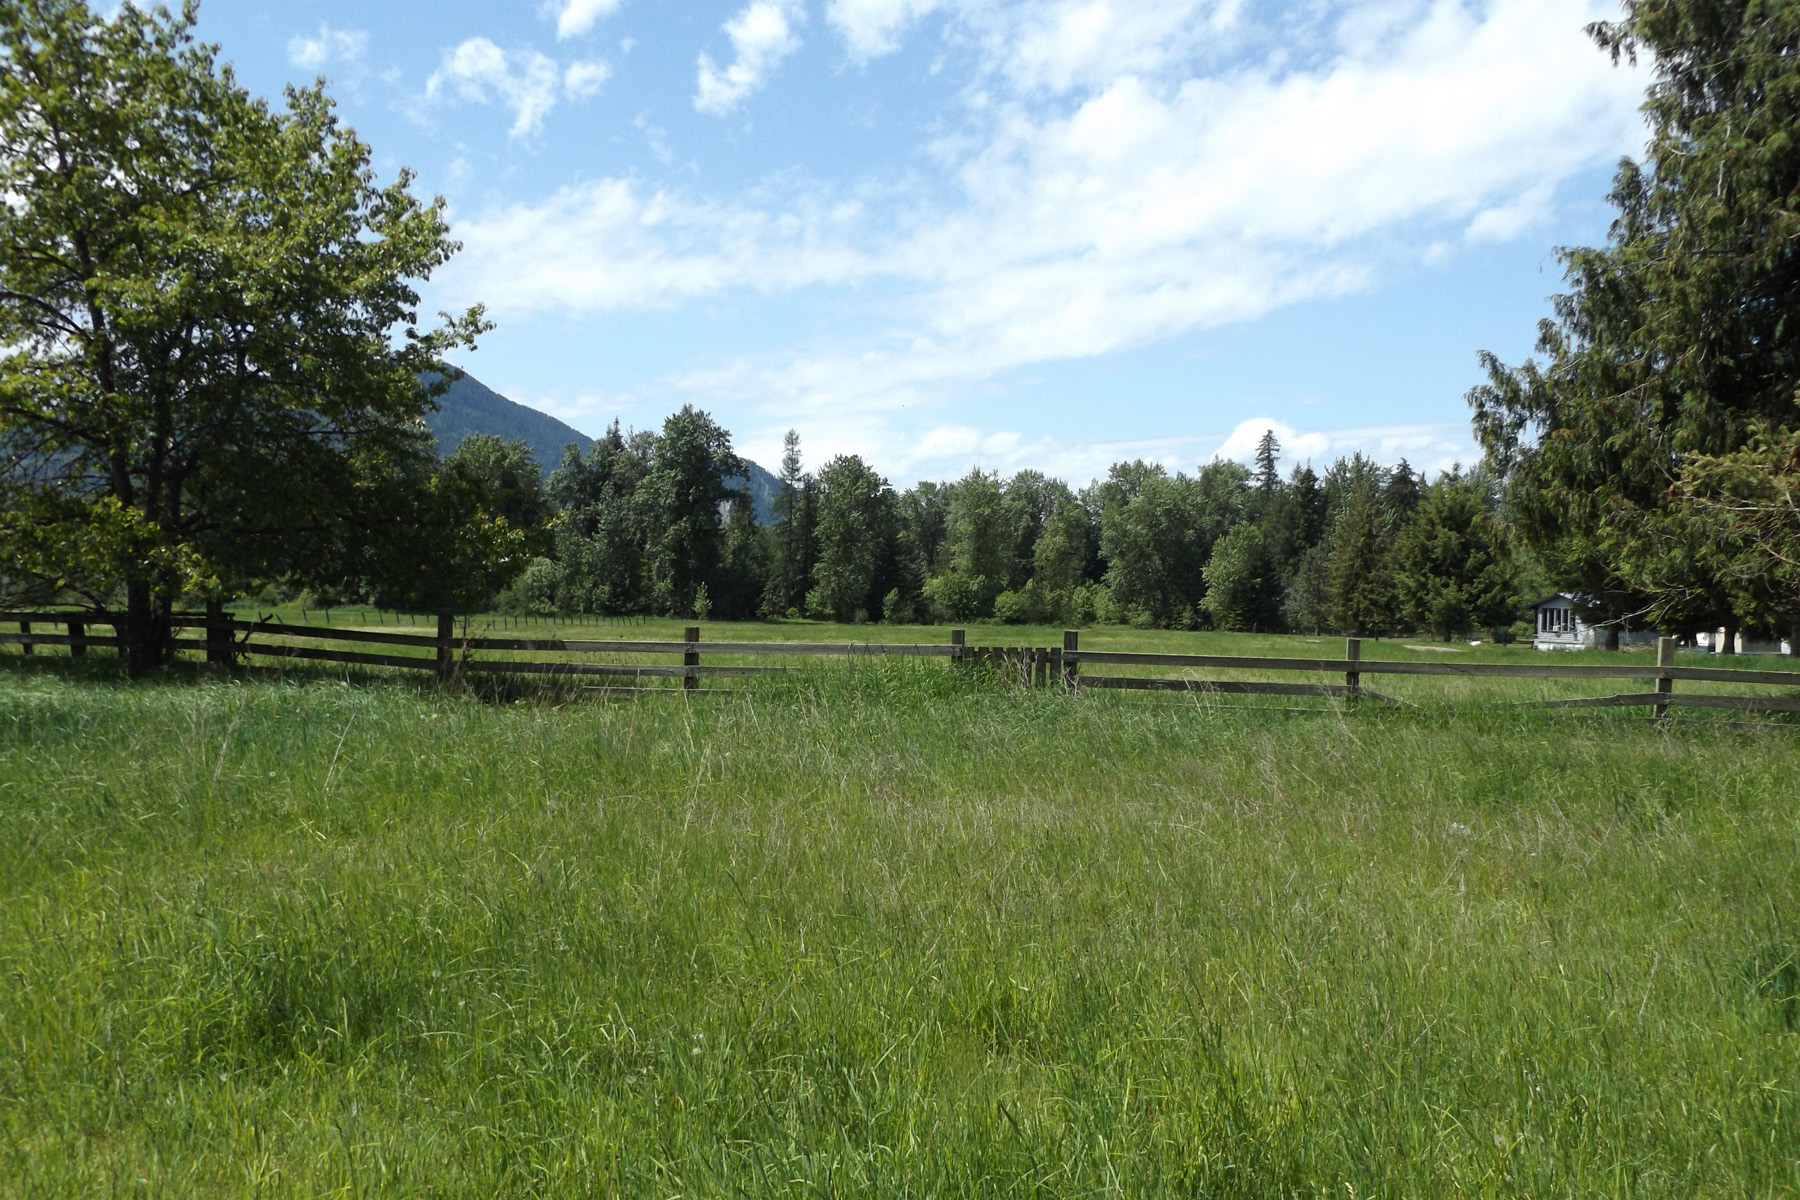 Amazing Development Potential 317 W. 4th Ave. Clark Fork, Idaho 83811 United States